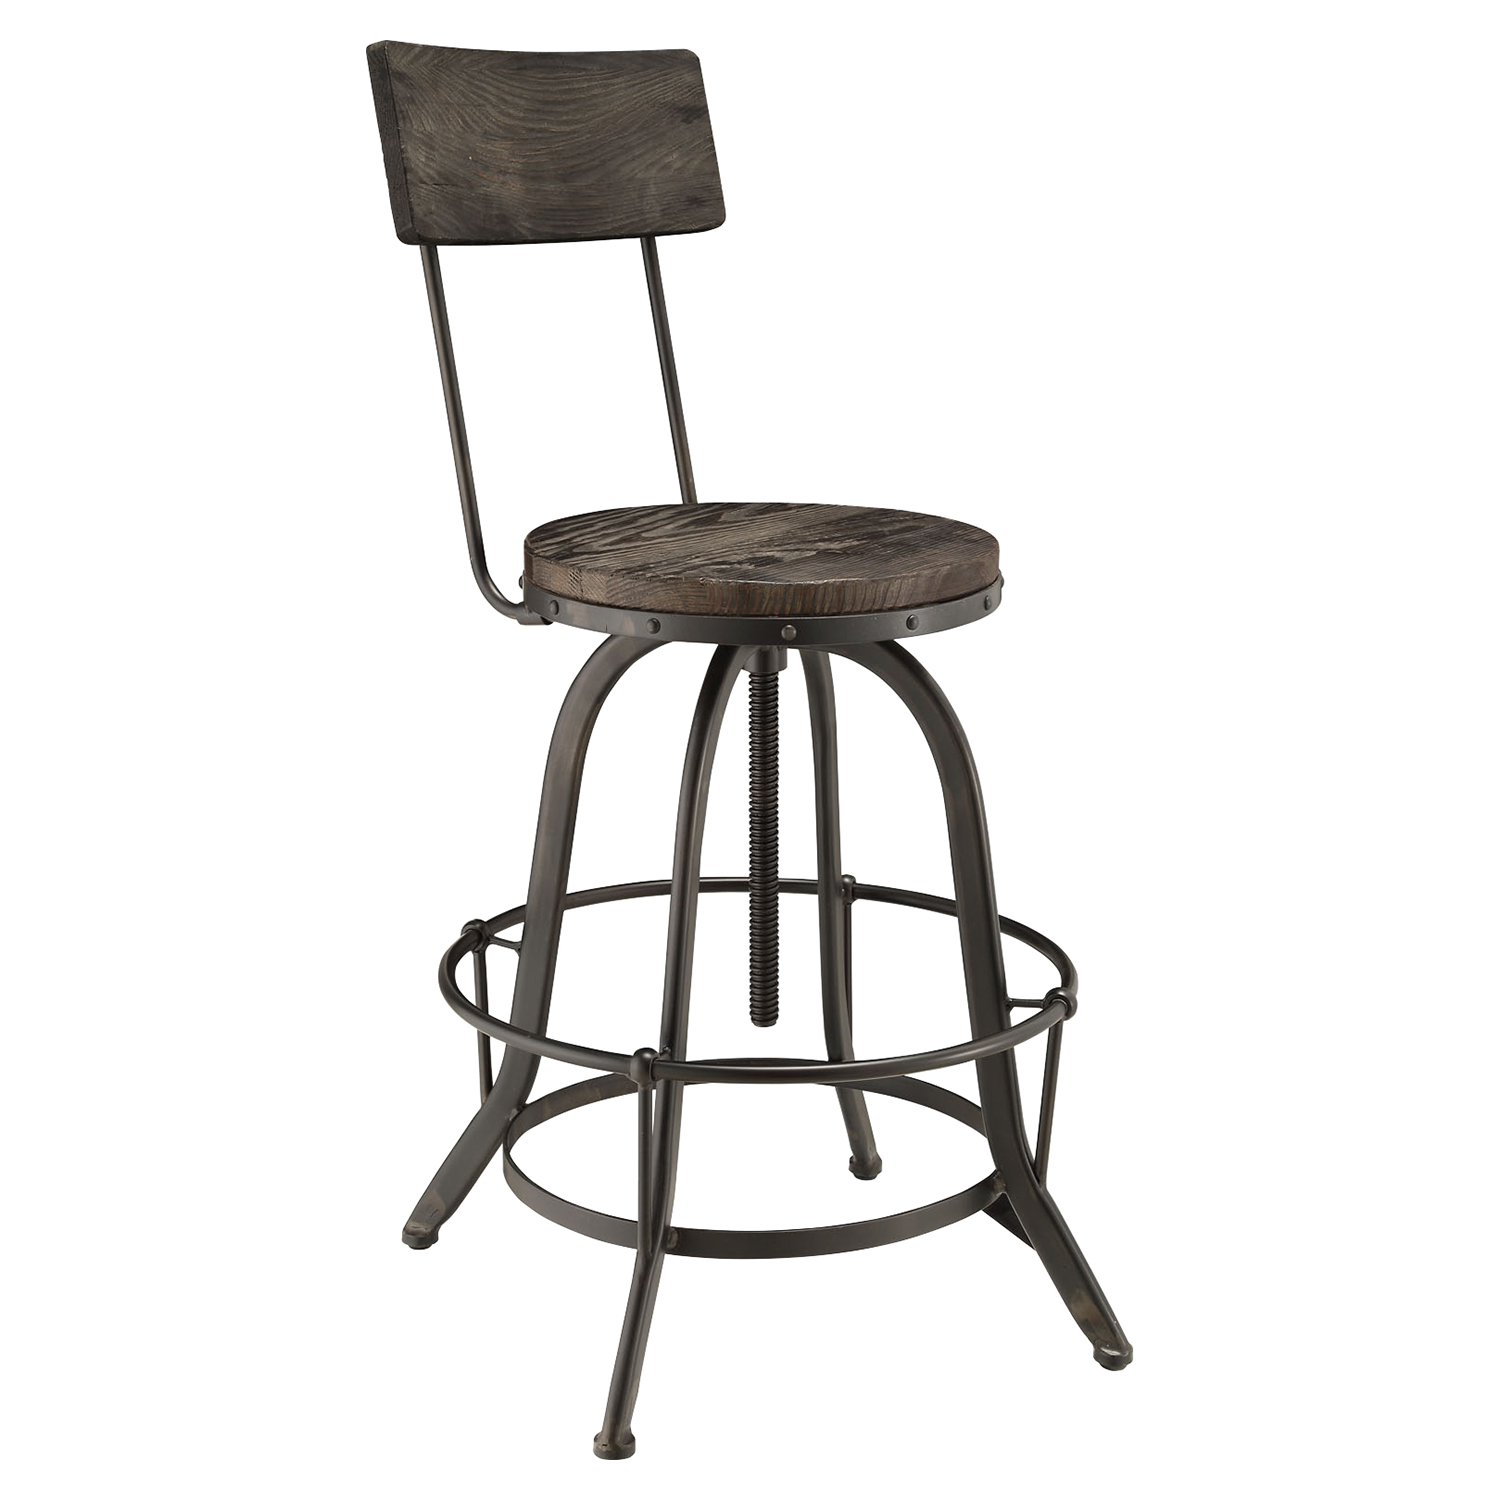 Procure Backrest Bar Stool - Black (Set of 2) - EEI-1605-BLK-SET